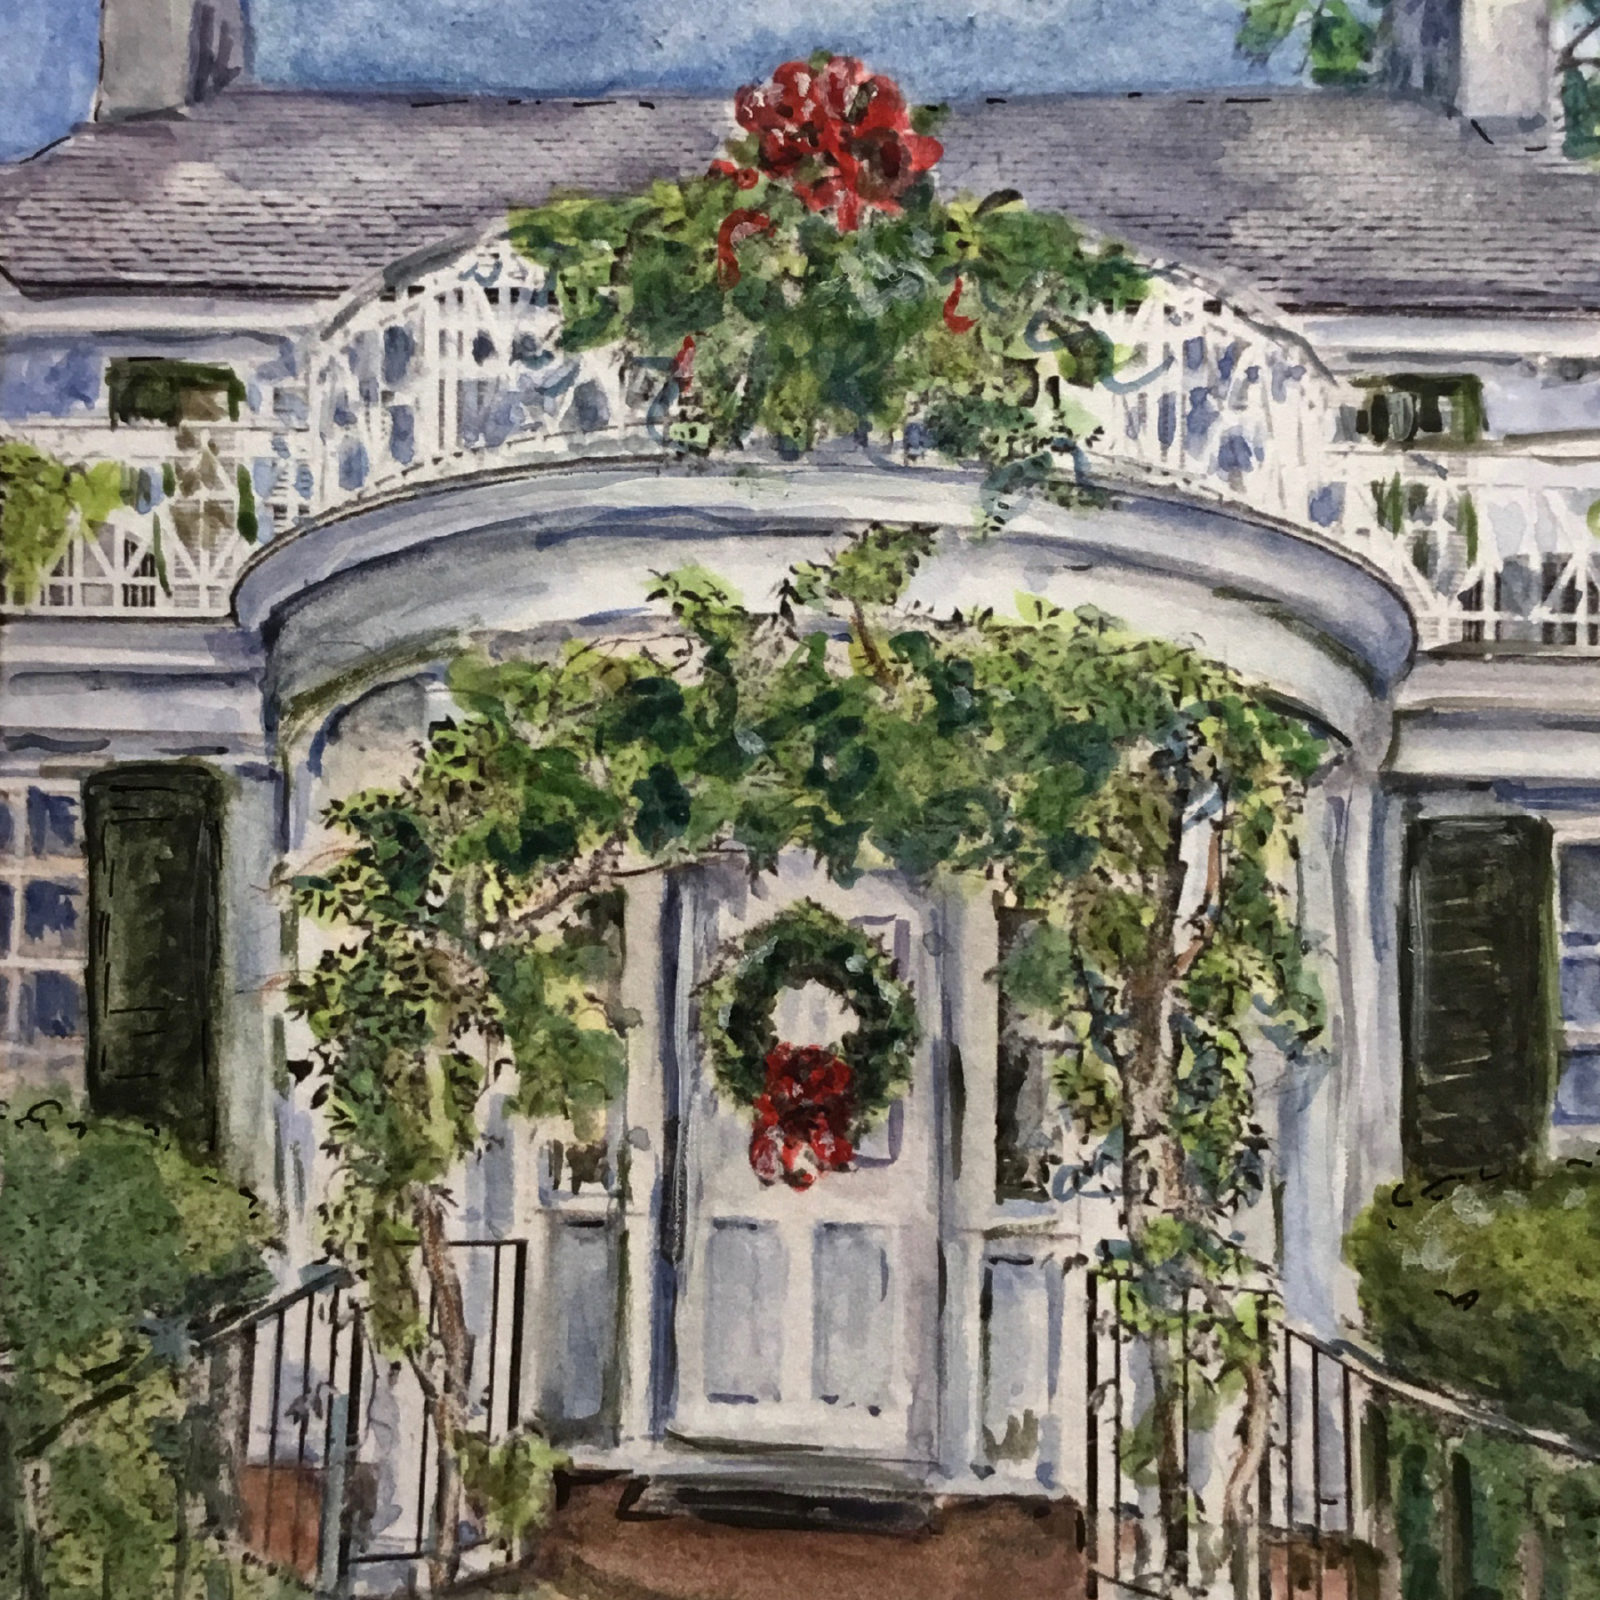 Weymouth entrance at holidays. Painted by Ellen Burke. 2020